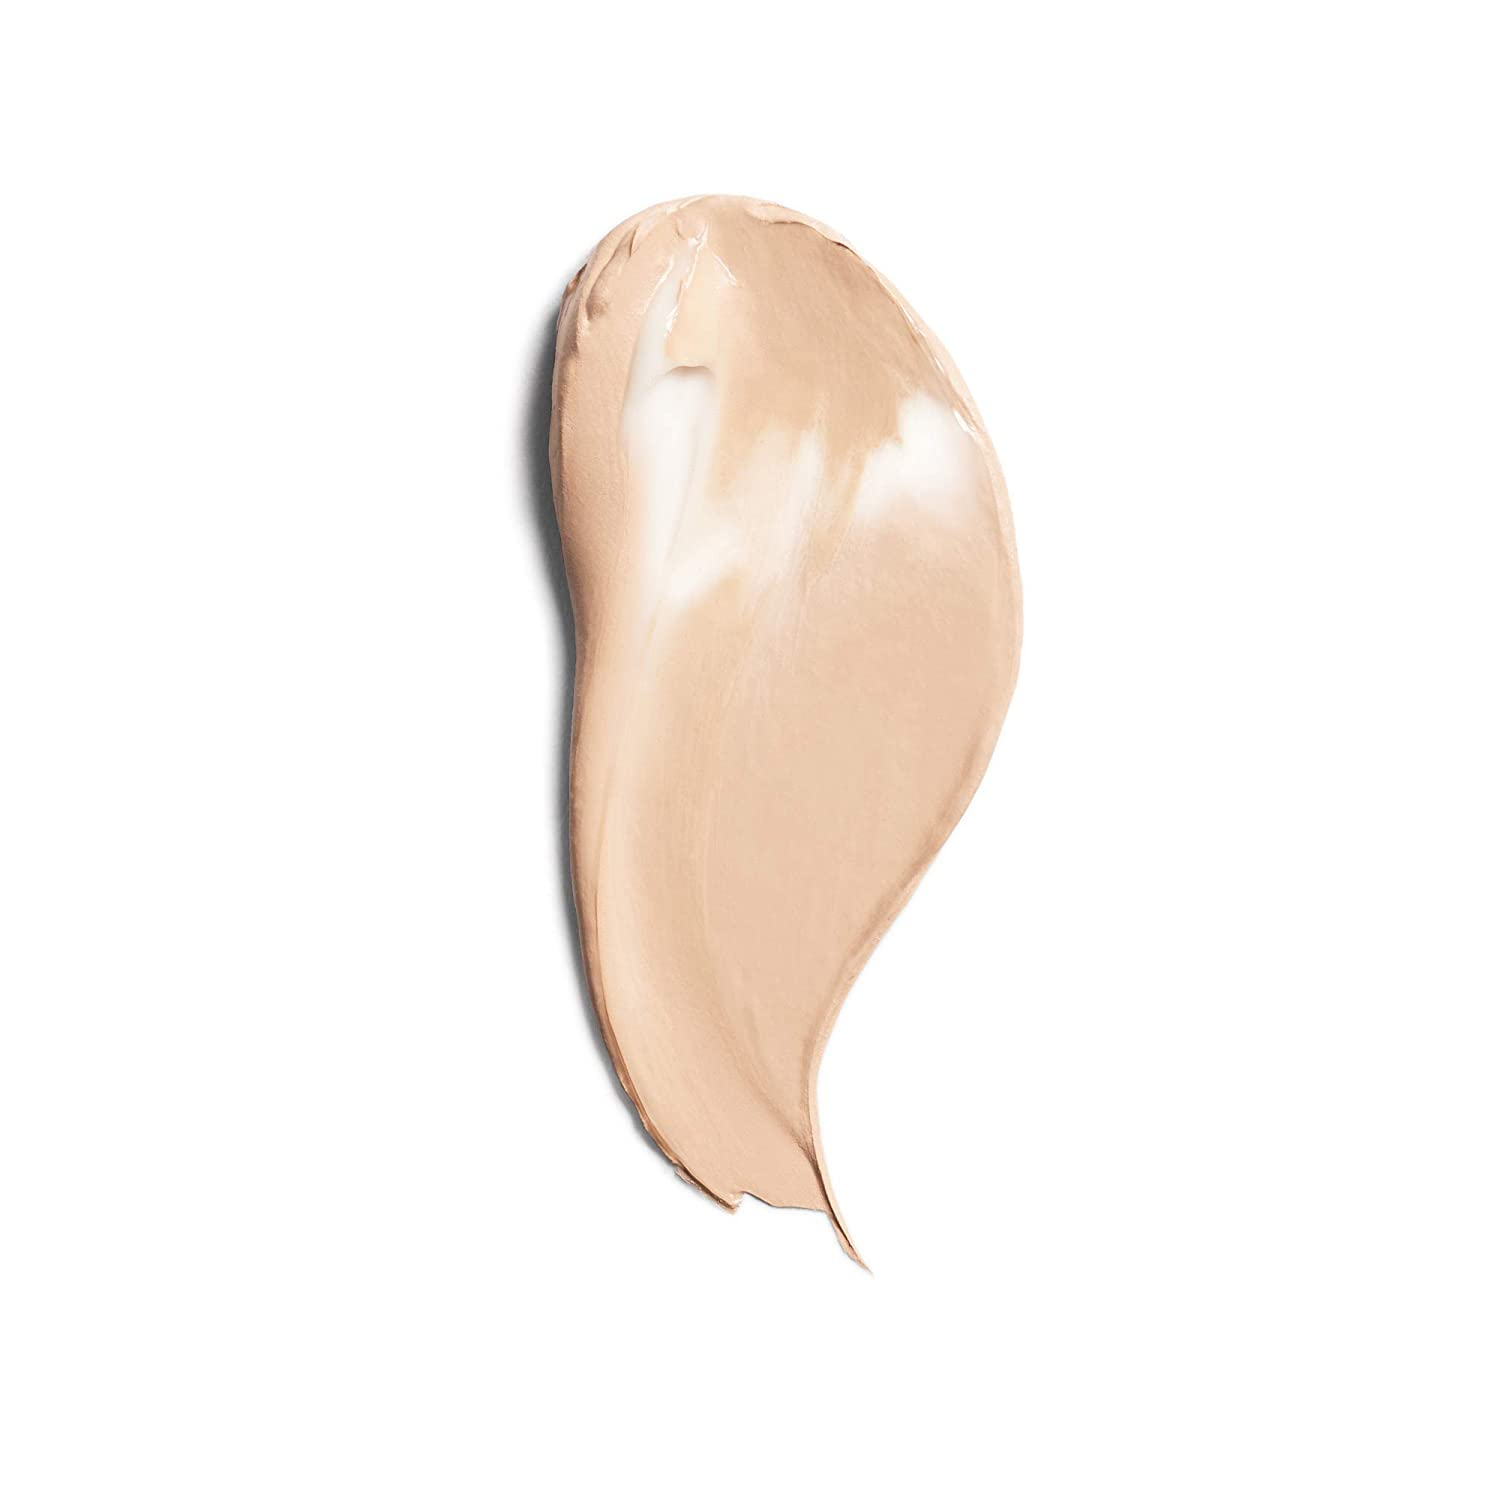 COVERGIRL & Olay Simply Ageless Instant Wrinkle-Defying Foundation, Creamy Natural 0.44 Fl Oz (Pack of 1) : Foundation Makeup : Beauty & Personal Care